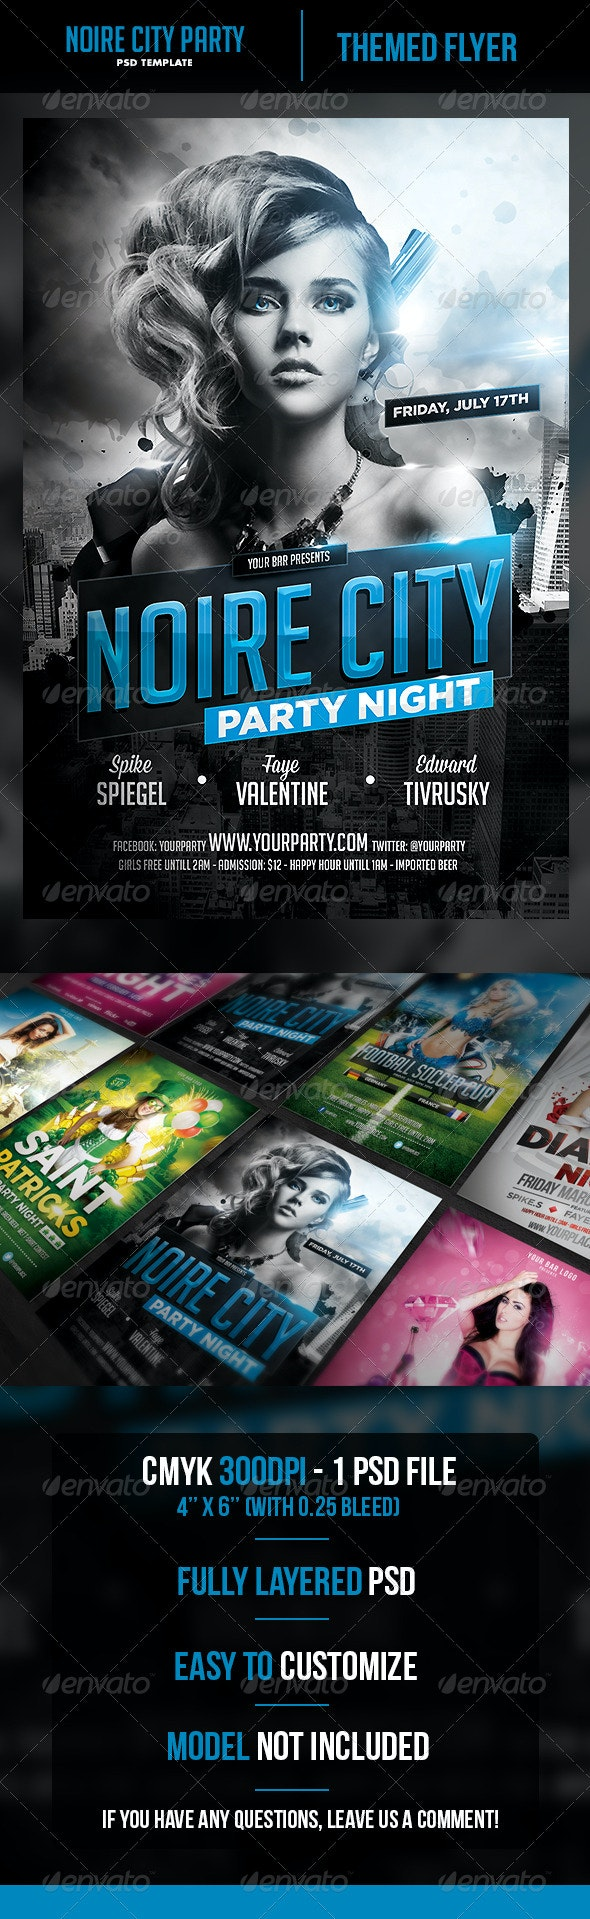 Noire City Party Flyer Template - Clubs & Parties Events